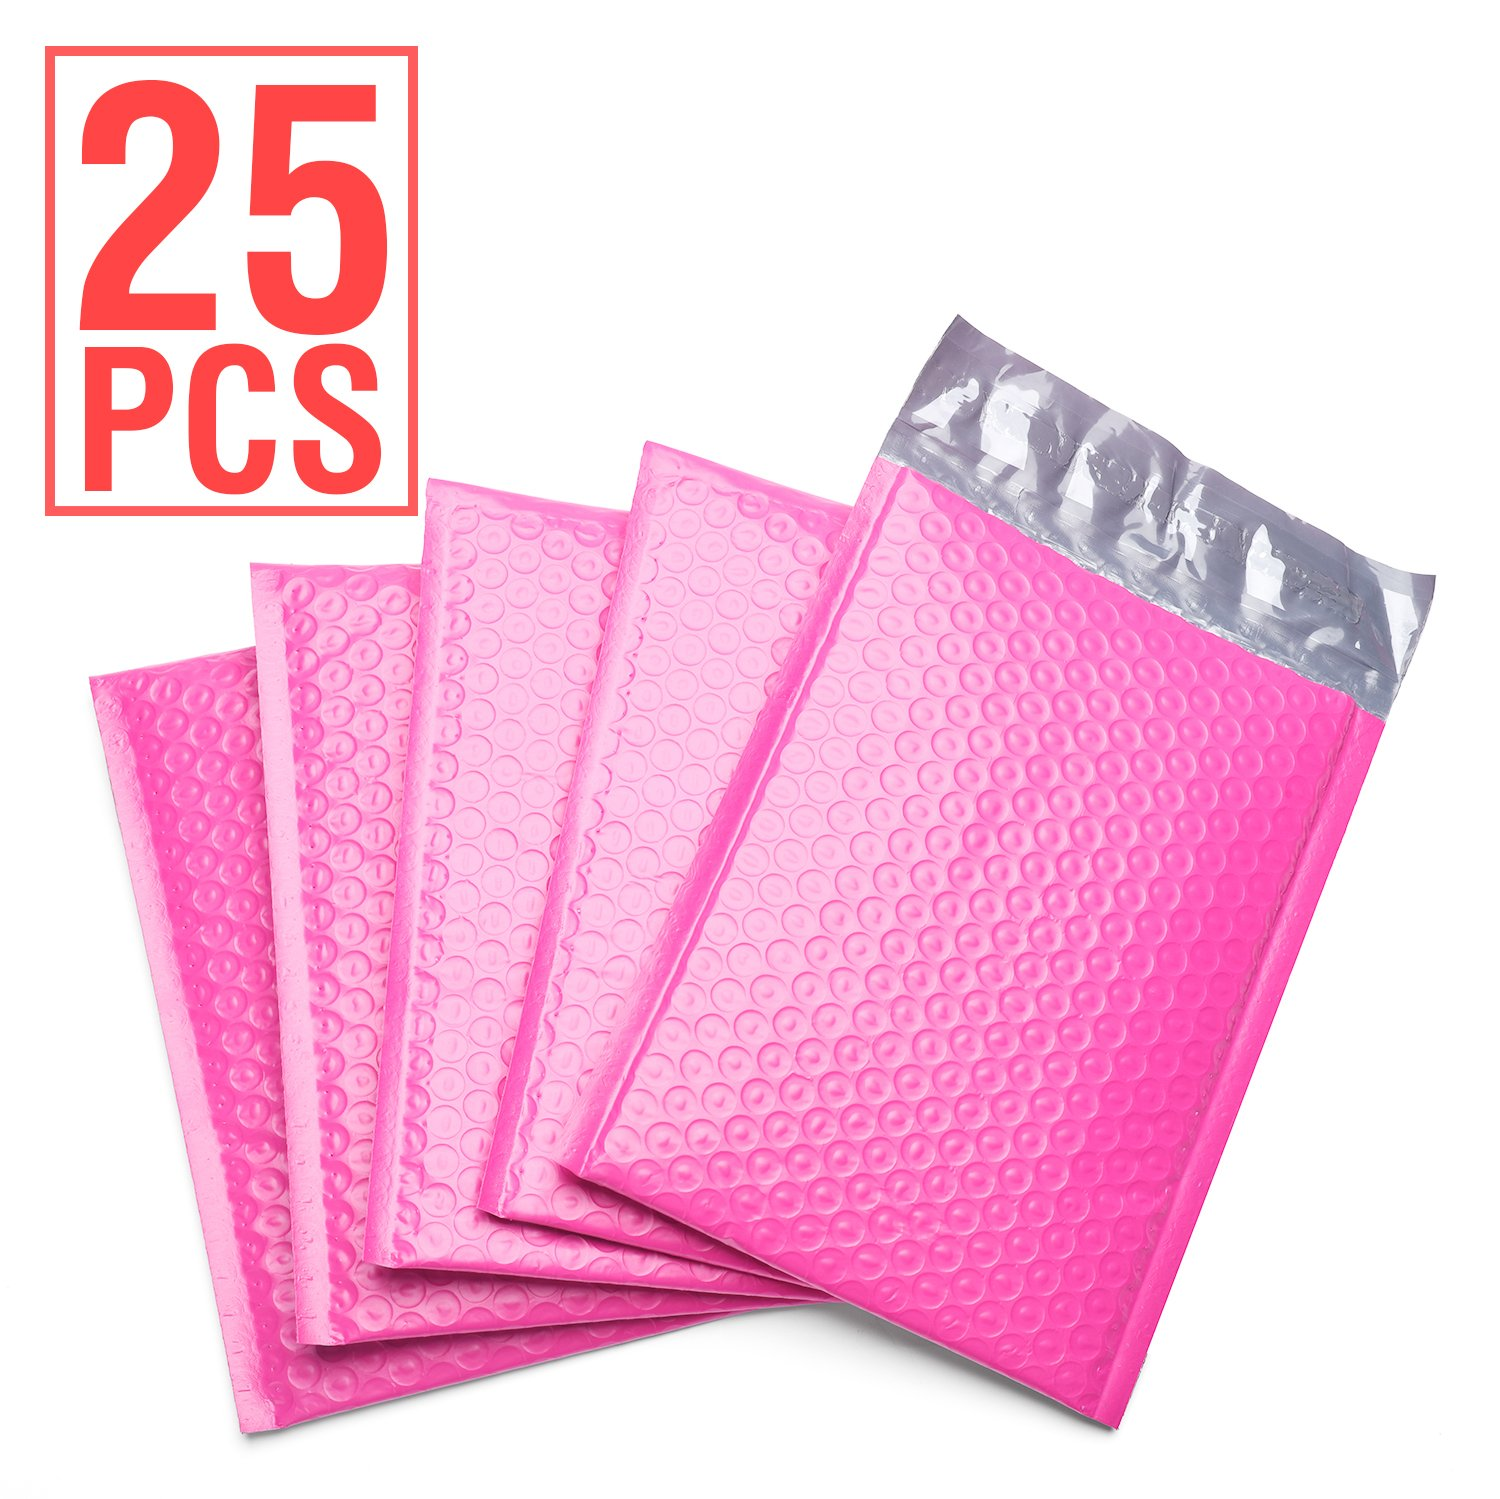 Fu Global 0 6x10 Poly Bubble Mailer Self Seal Padded Envelopes Pack Of 25